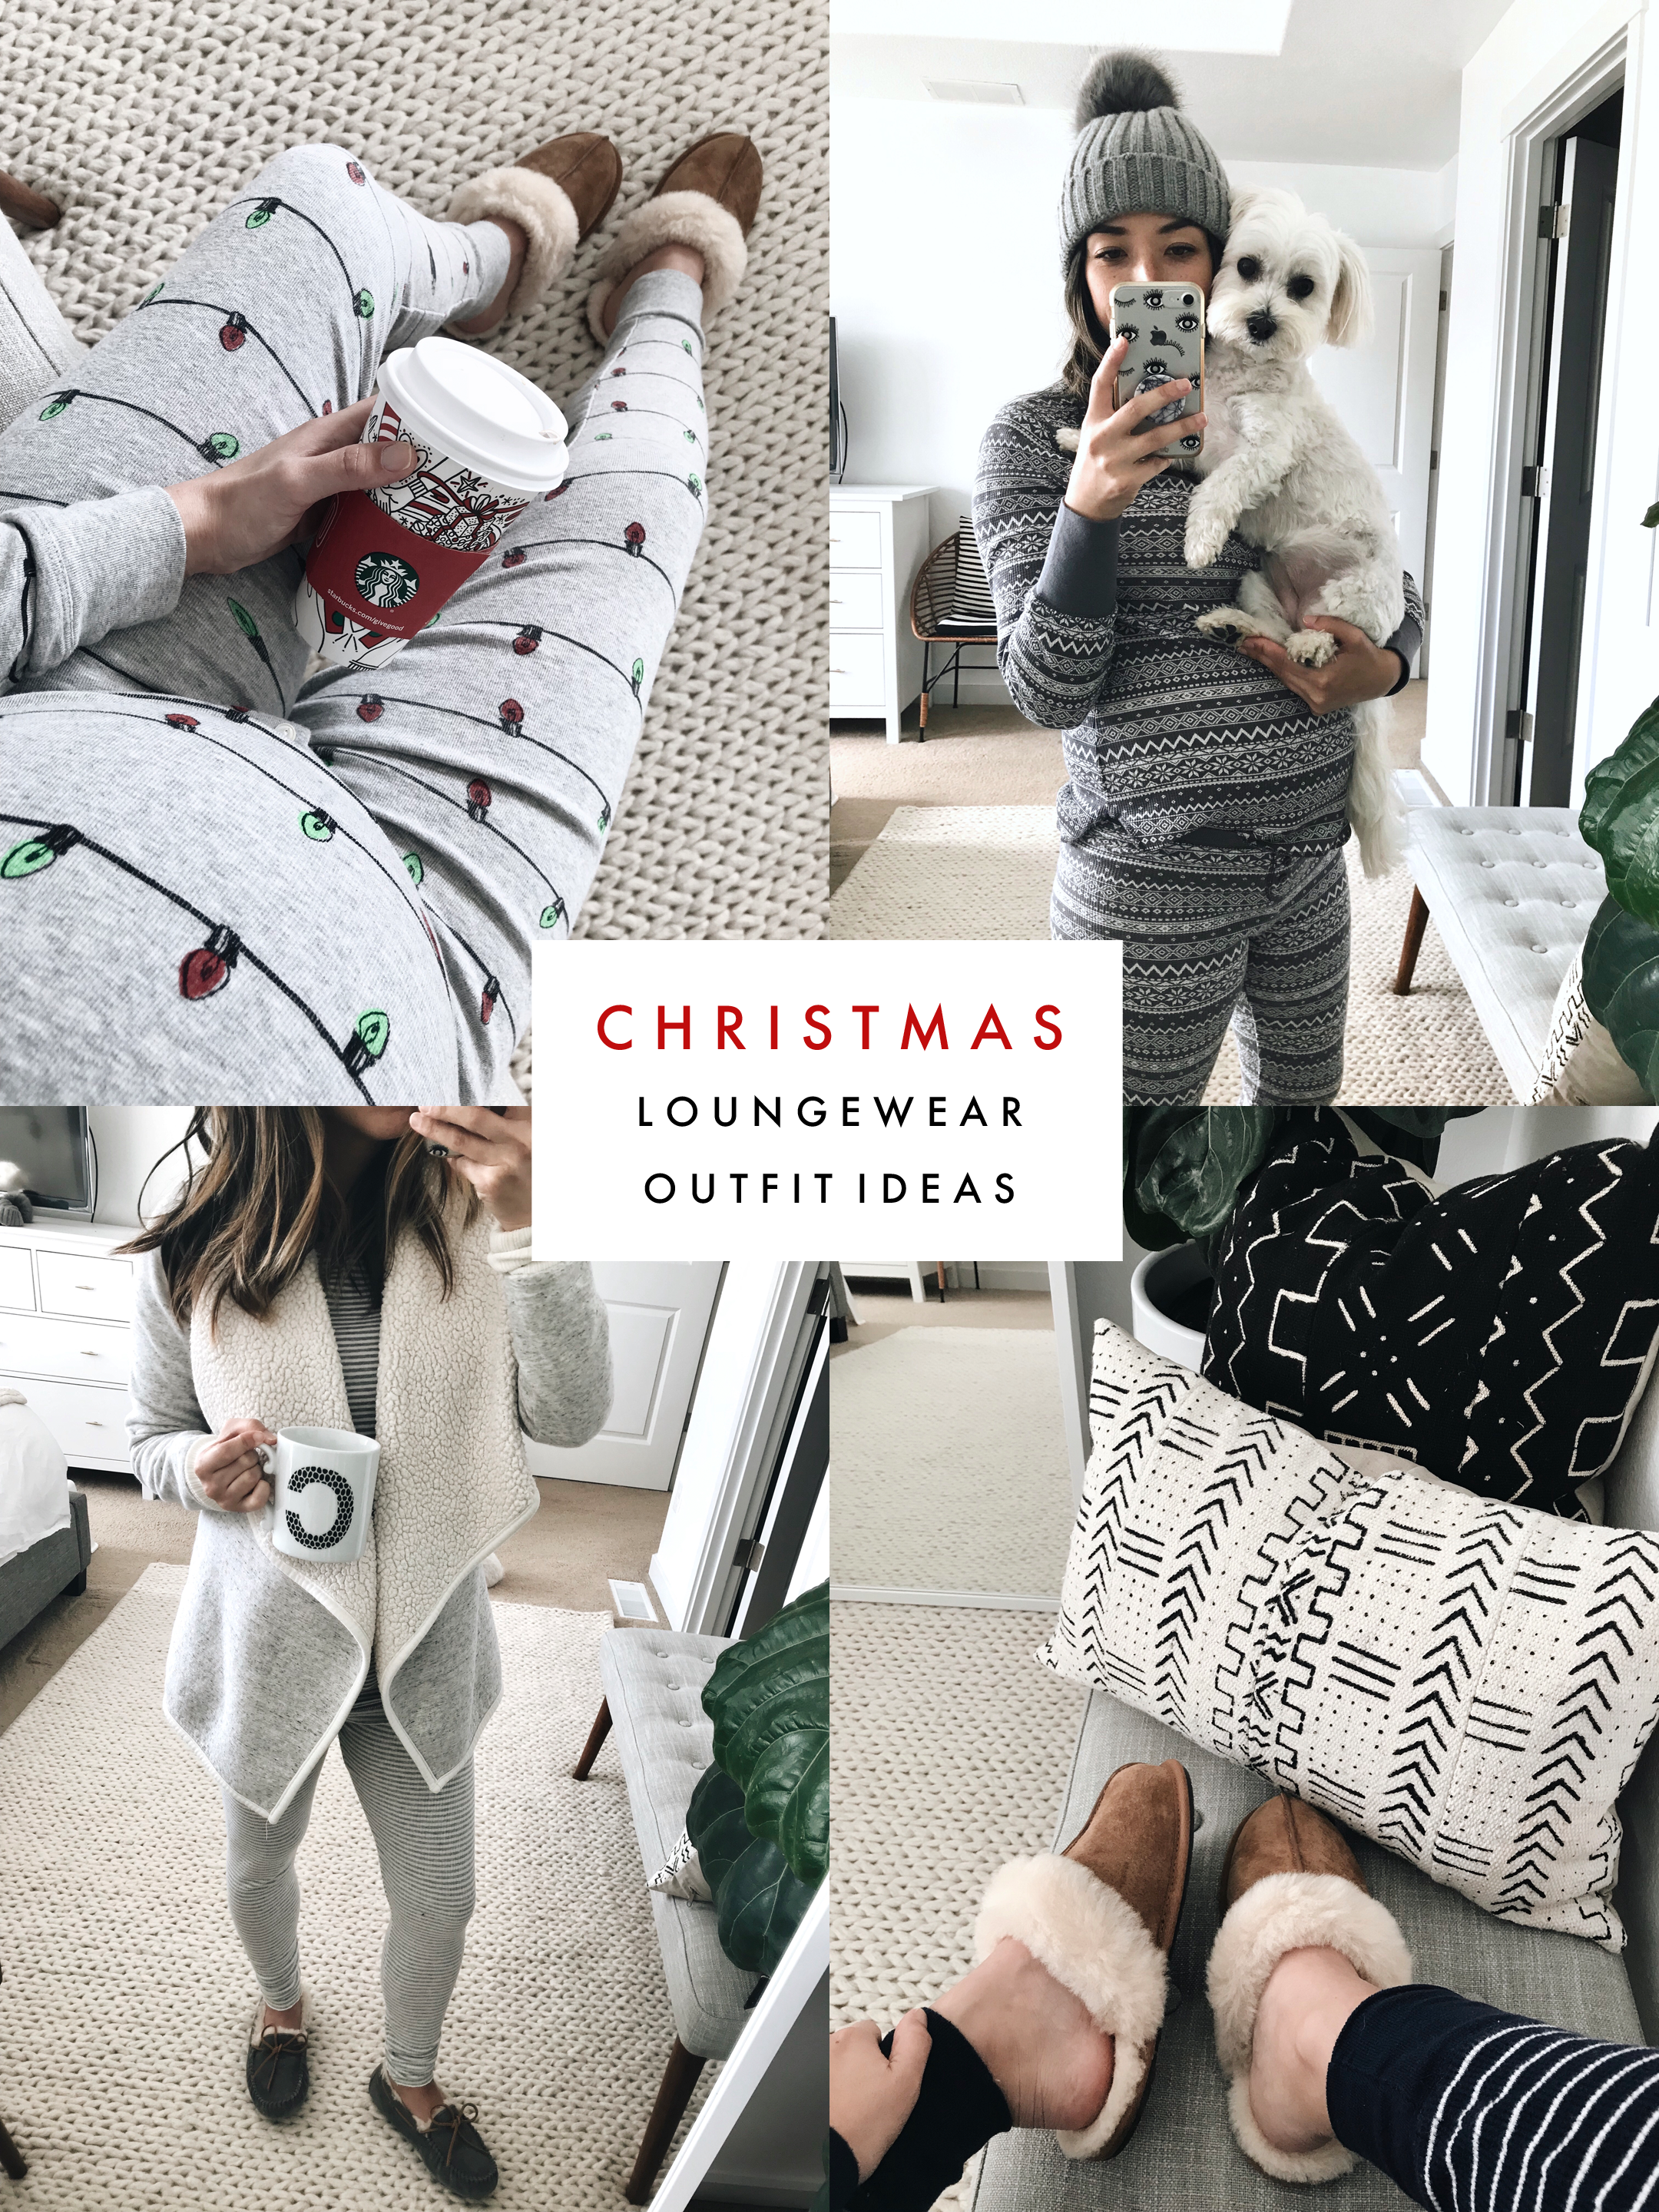 CHRISTMAS LOUNGEWEAR OUTFIT IDEAS